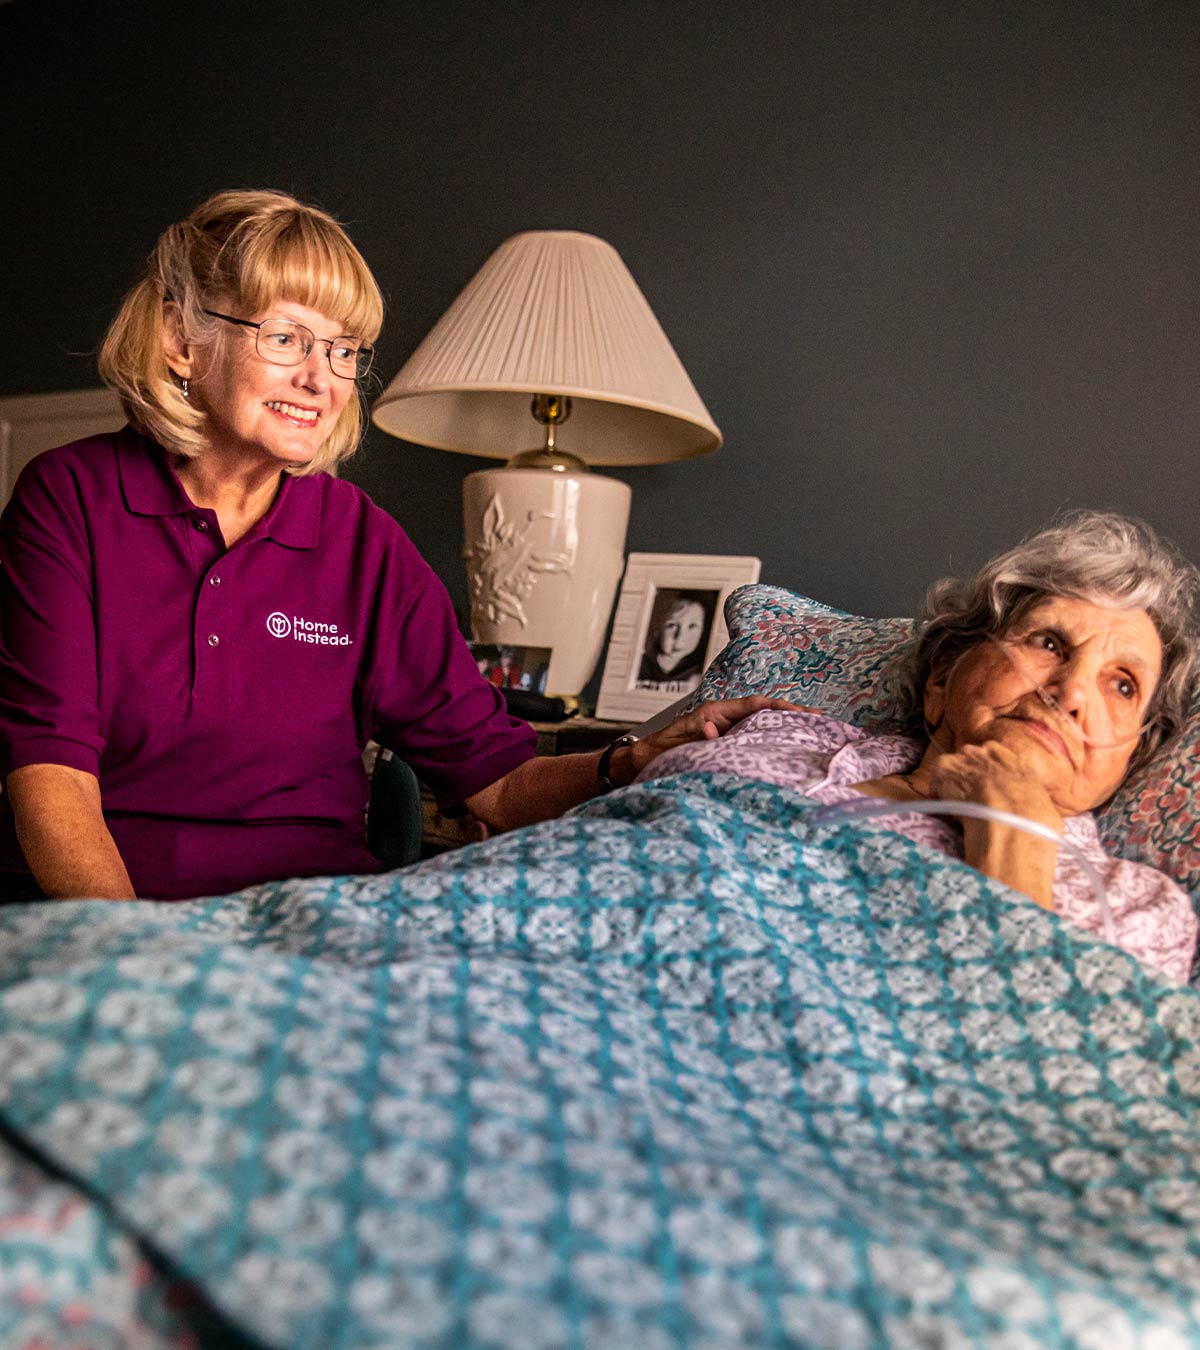 Home Instead CAREGiver sitting next to bed with senior